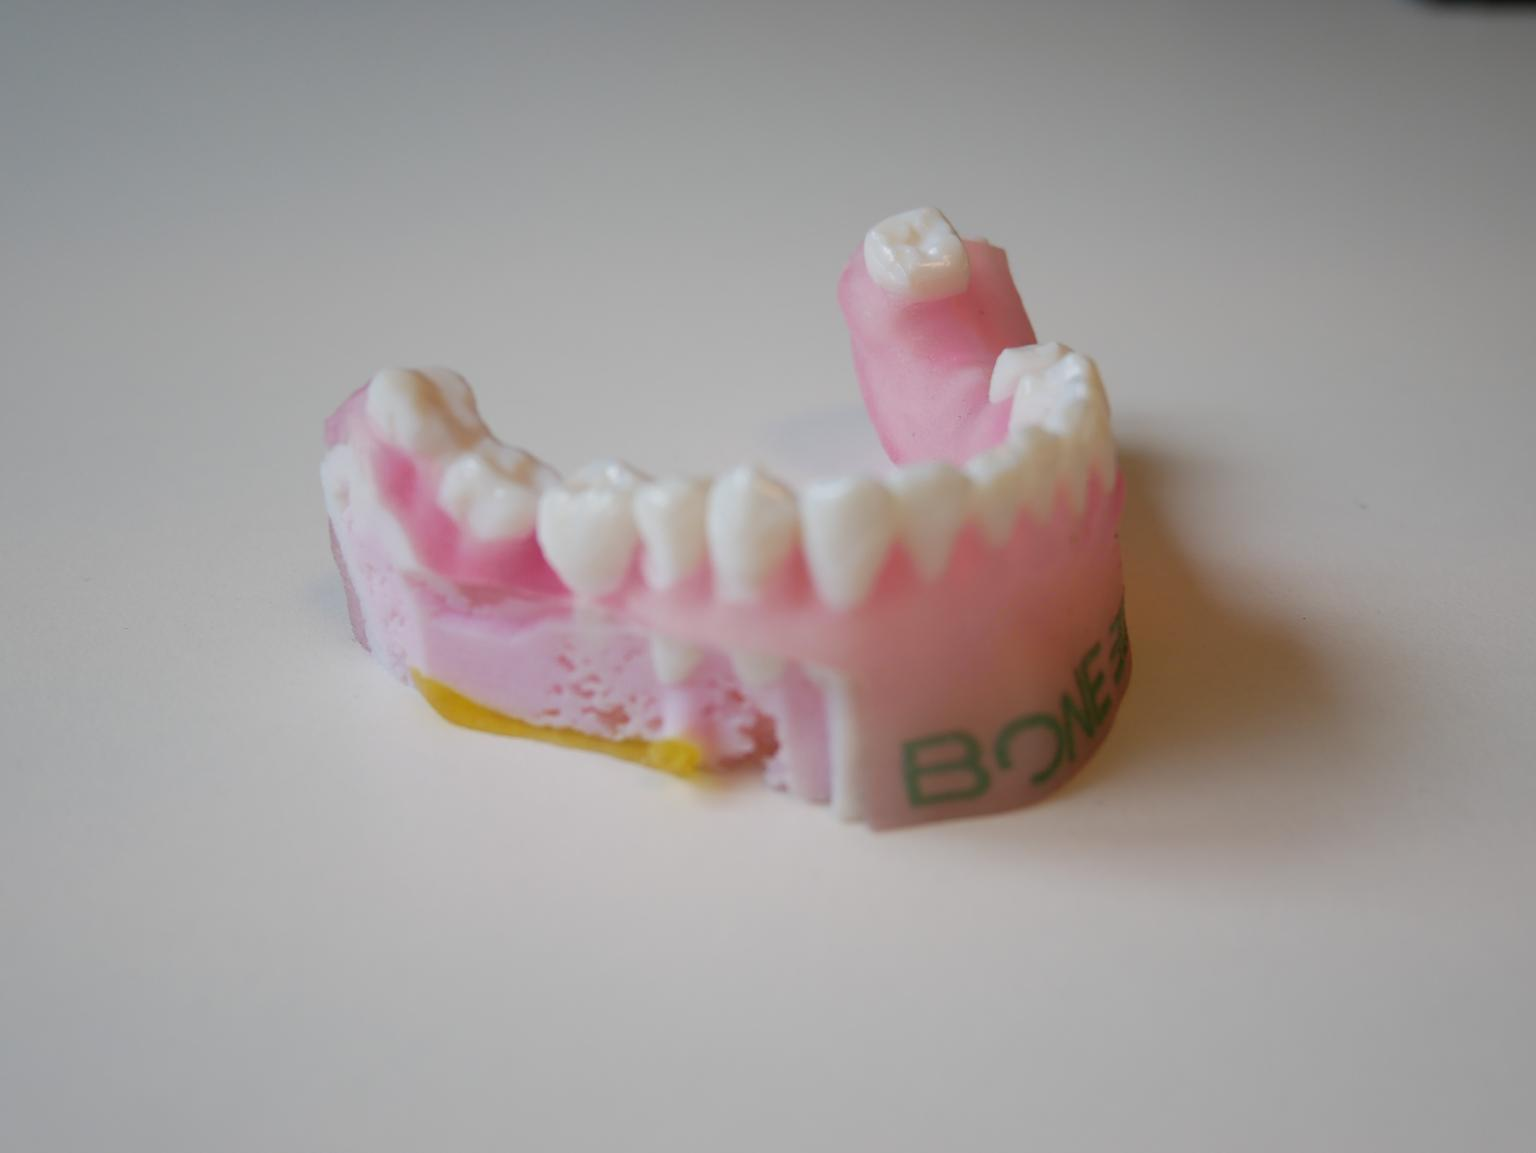 A 3D printed orthodontic model produced on the Stratasys J750. Photo via Bone 3D.